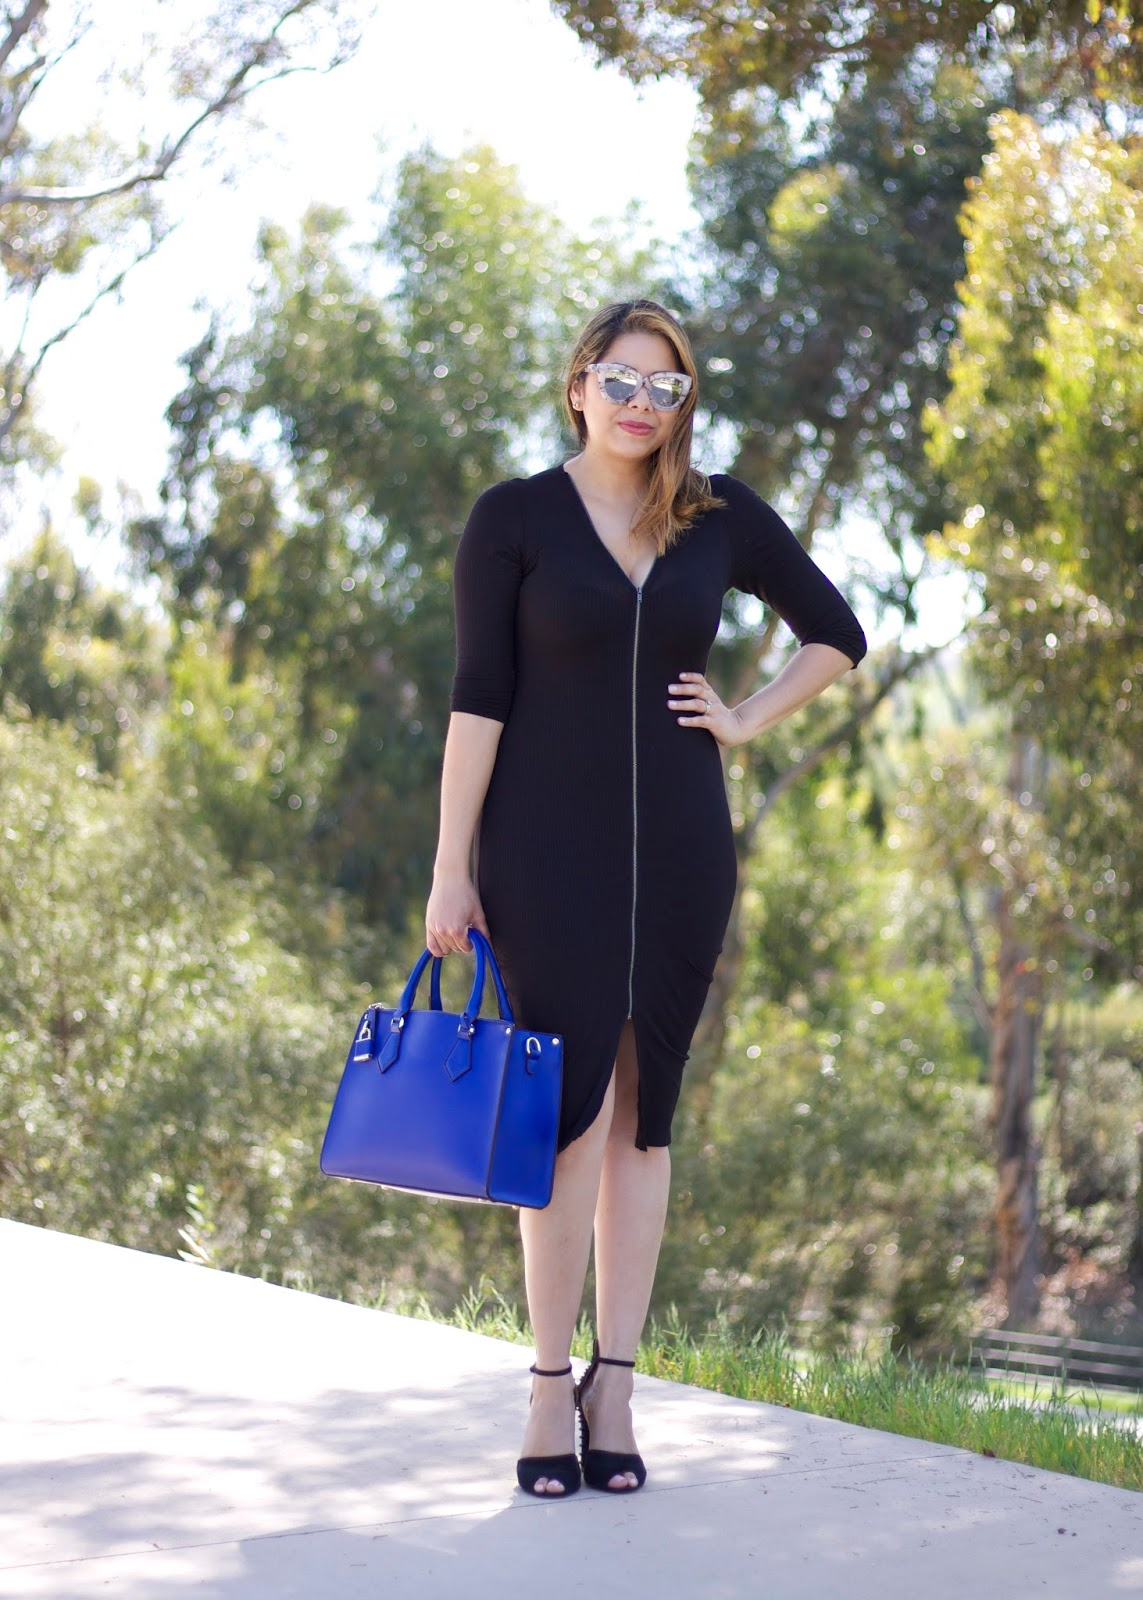 QUay sunnies, quay blogger, black and blue outfit, zara shoes